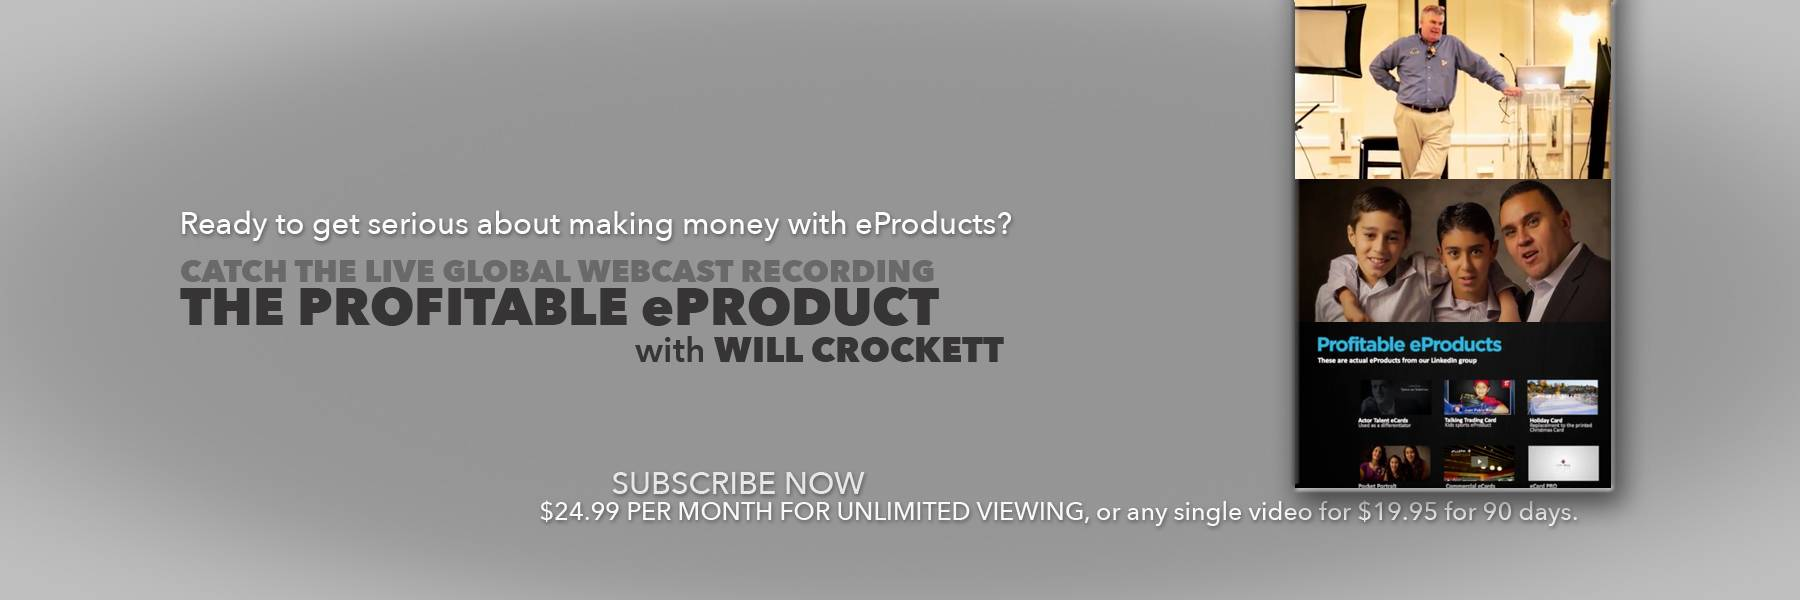 Low product cost, high margin eProducts.